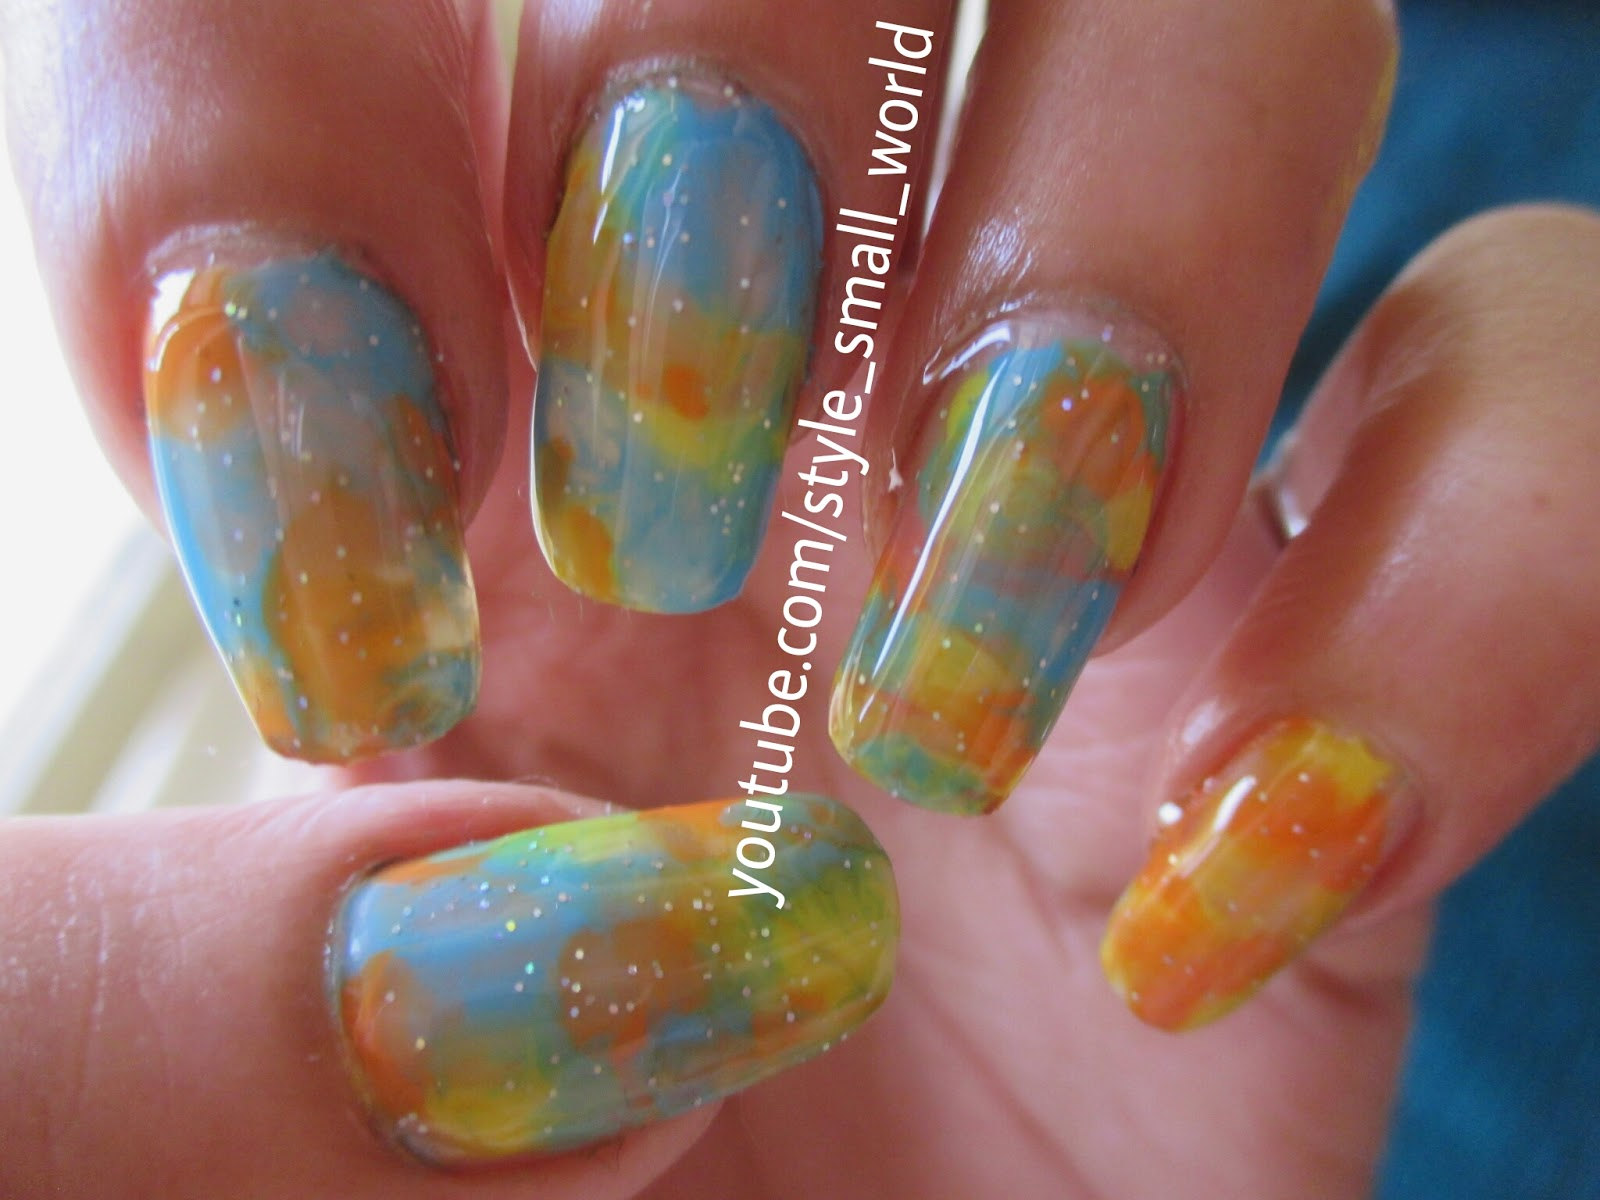 Style small world easy and simple nail art design without easy and simple nail art design without tools for beginners watercolor prinsesfo Images